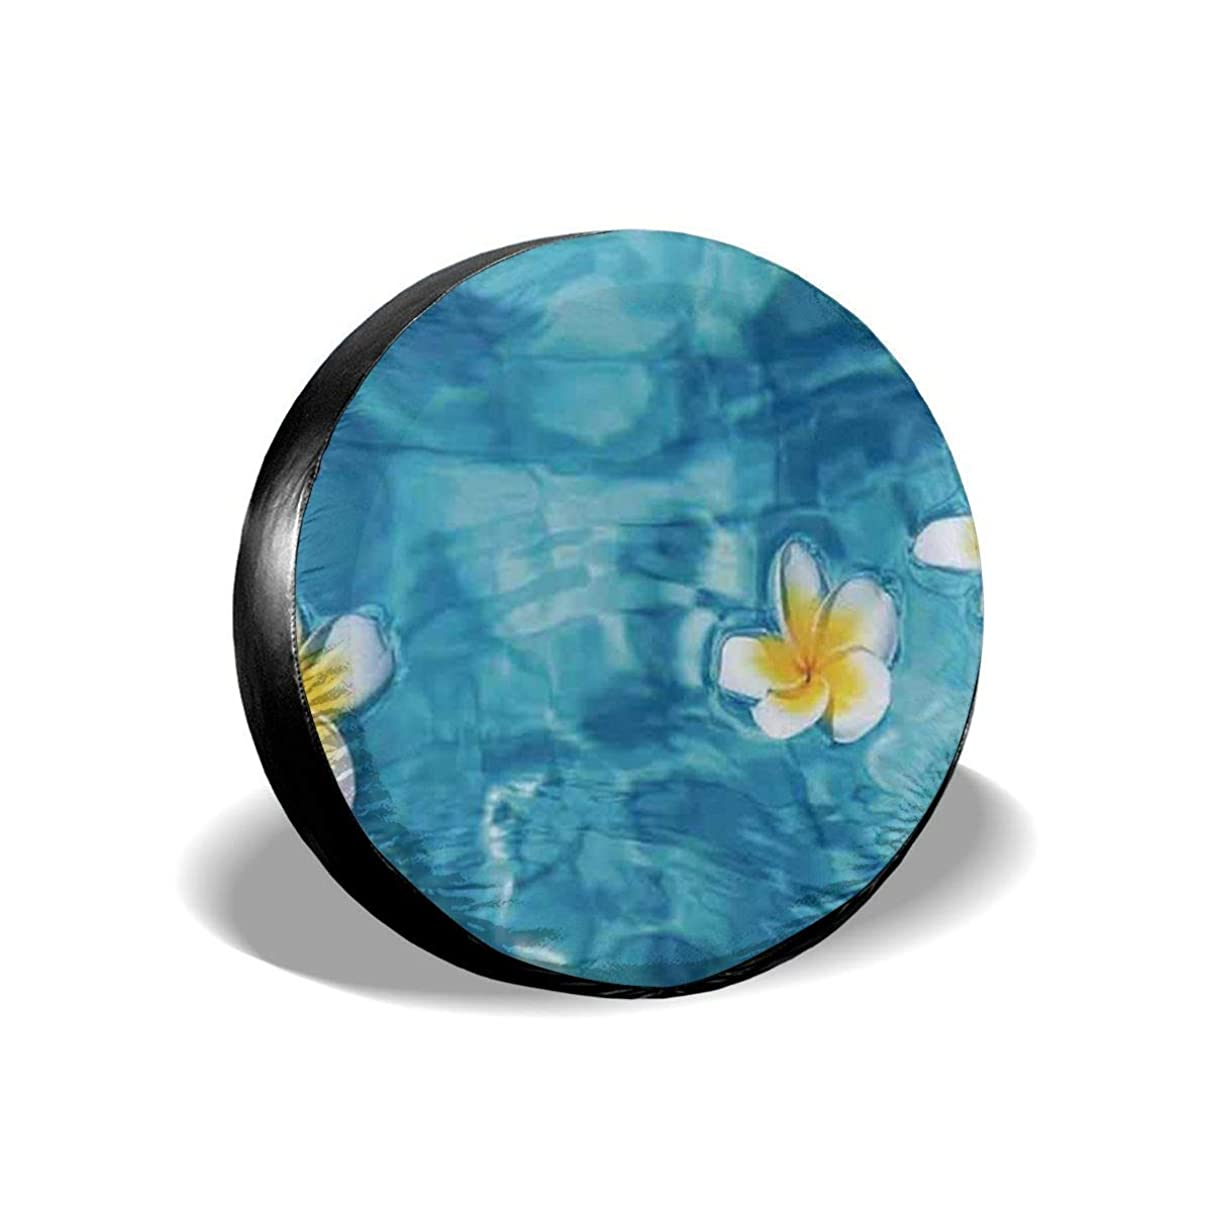 Tire Cover Tropical Frangipani Flower Floating In Water Pool Summertime Ecofriendly Polyester Universal Spare Wheel Tire Cover Wheel Covers Jeep Trailer RV SUV Truck Camper Travel Trailer Accessories(